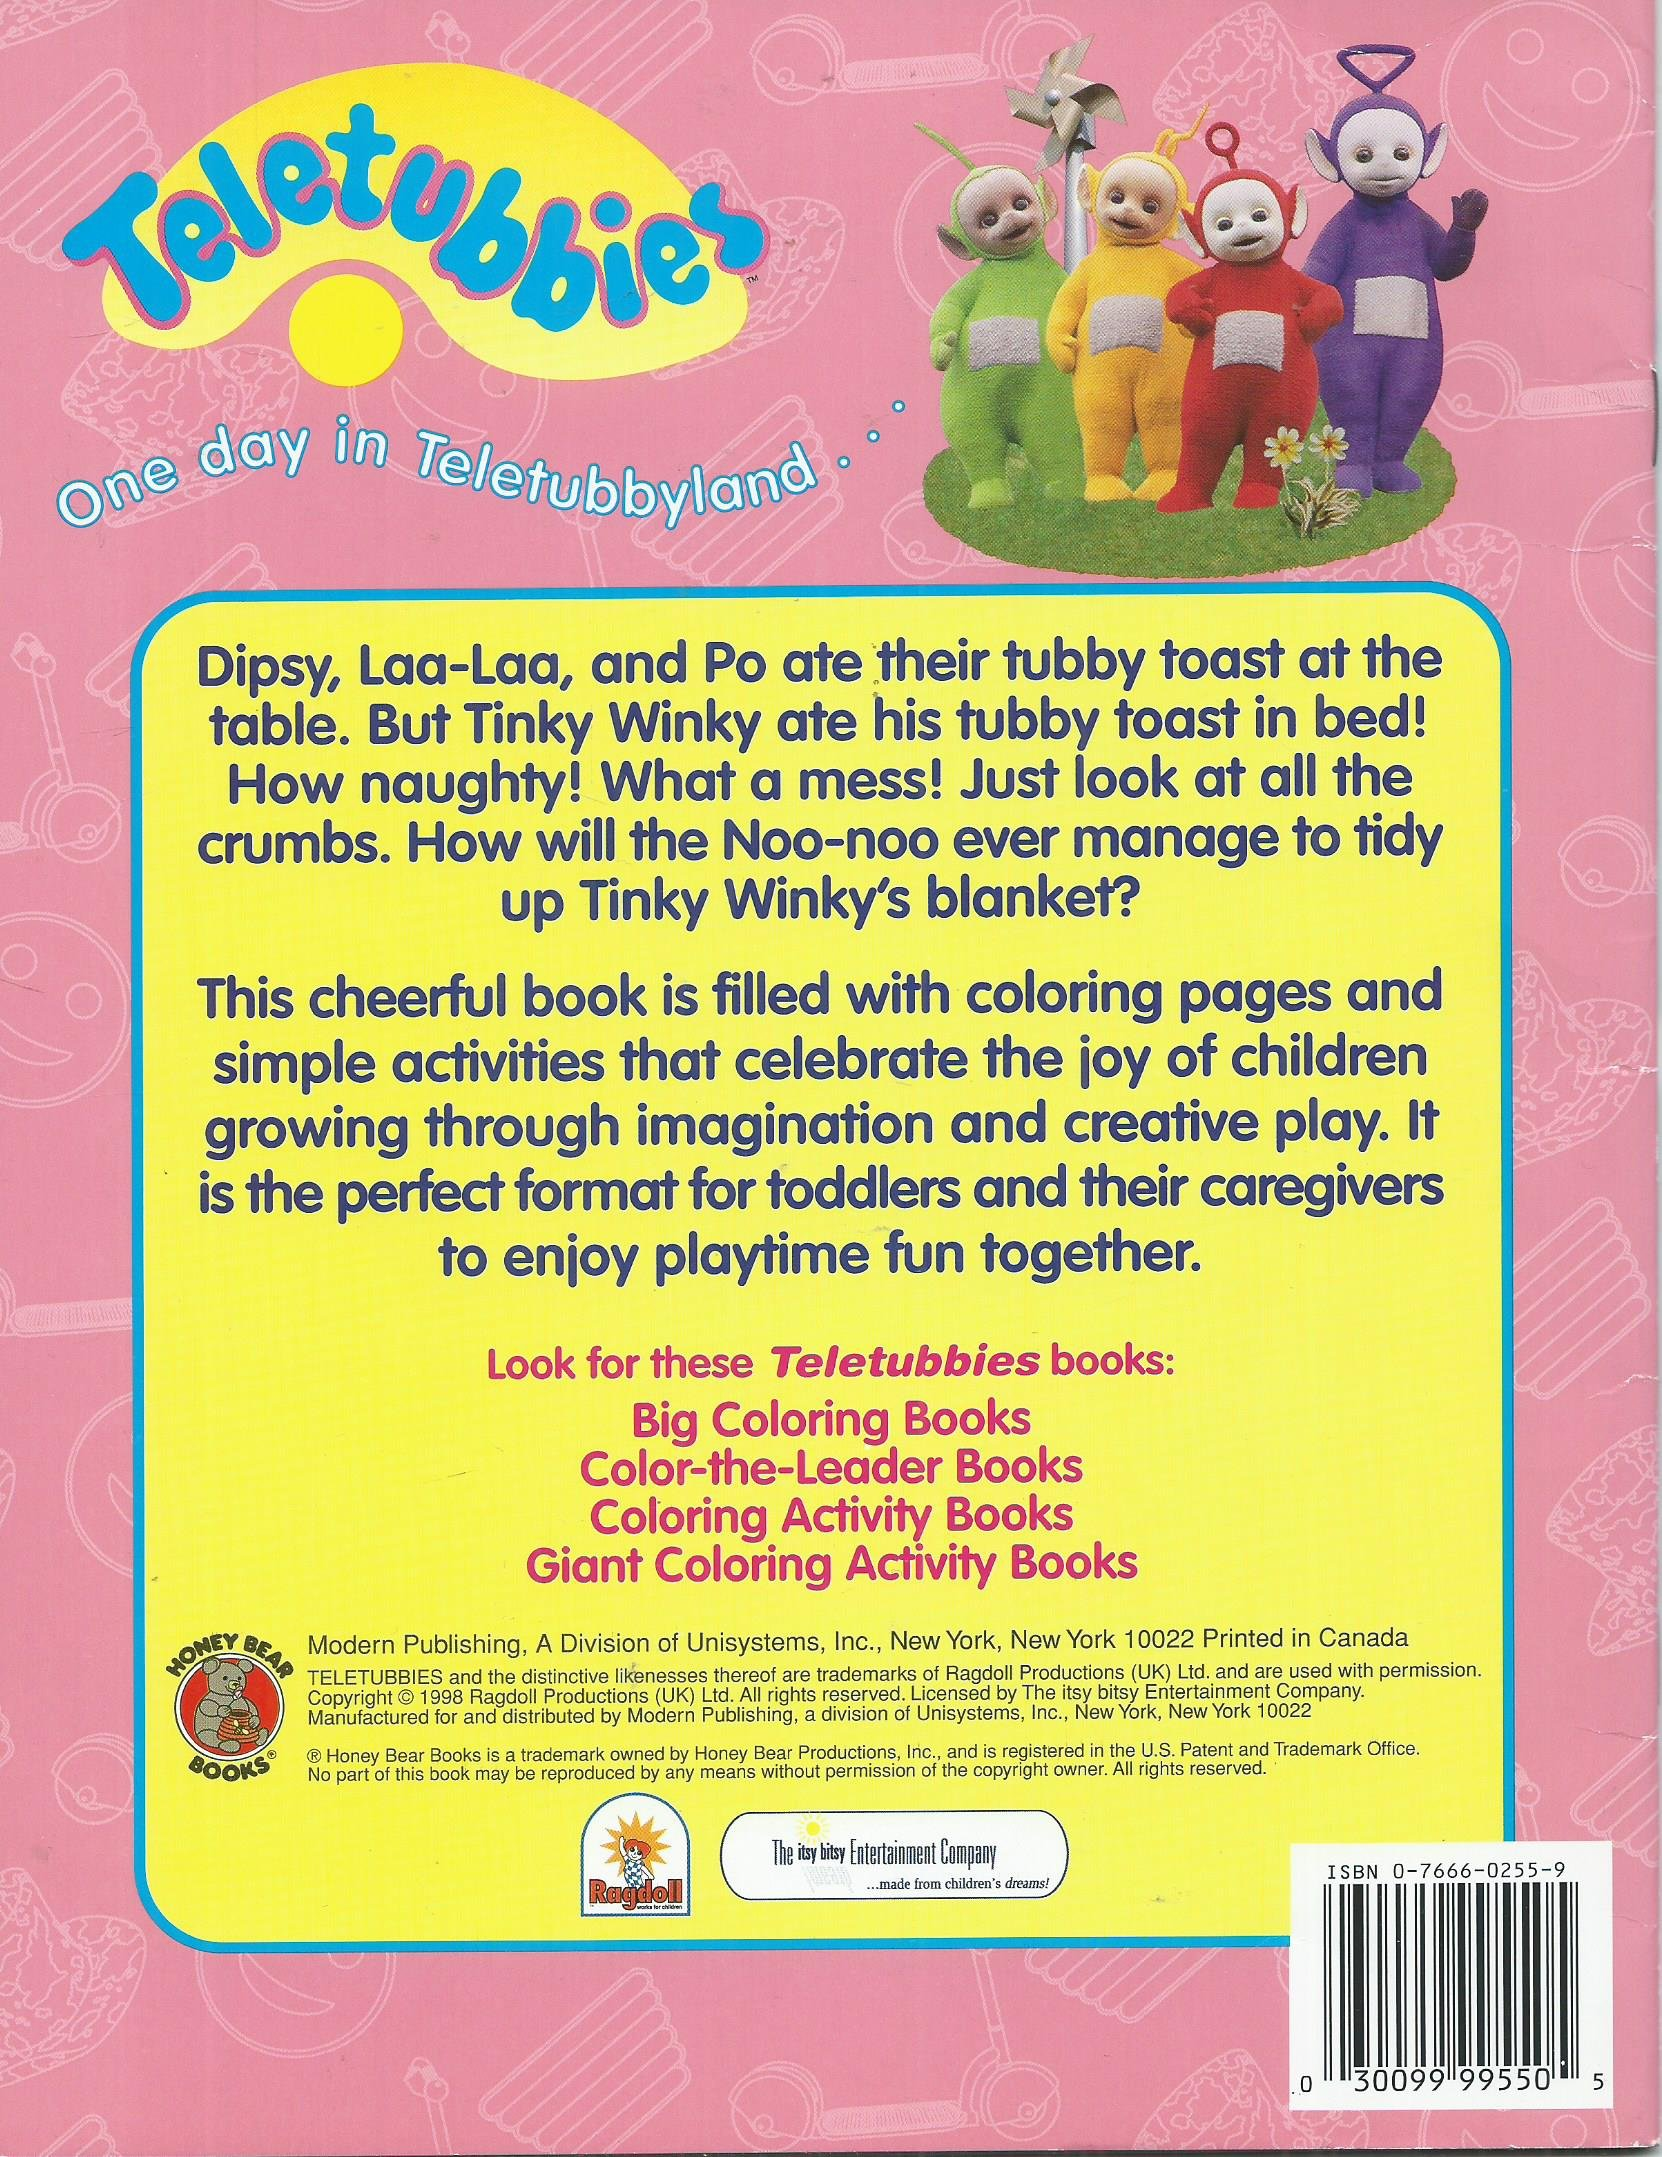 Childrens coloring sheet of a rag doll - Teletubbies Coloring Activity Book Series Tinkywinky S Tubby Toast 9780766602557 Amazon Com Books